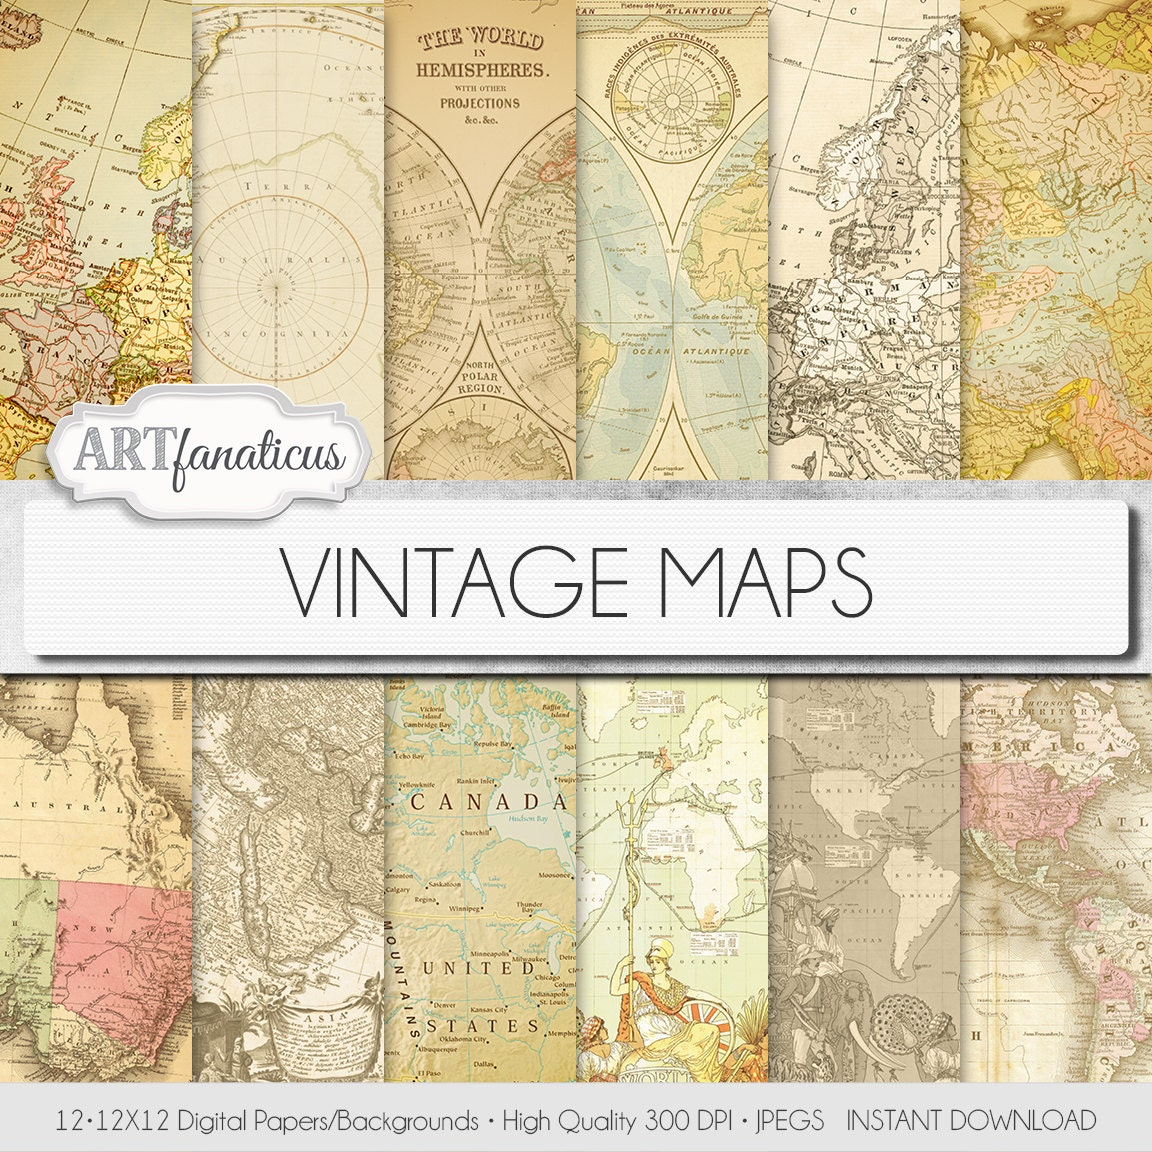 Vintage maps digital paper vintage maps travelantique maps old vintage maps digital paper vintage maps travelantique maps old world globe america europe asia australia maps scrapbooking from artfanaticus on gumiabroncs